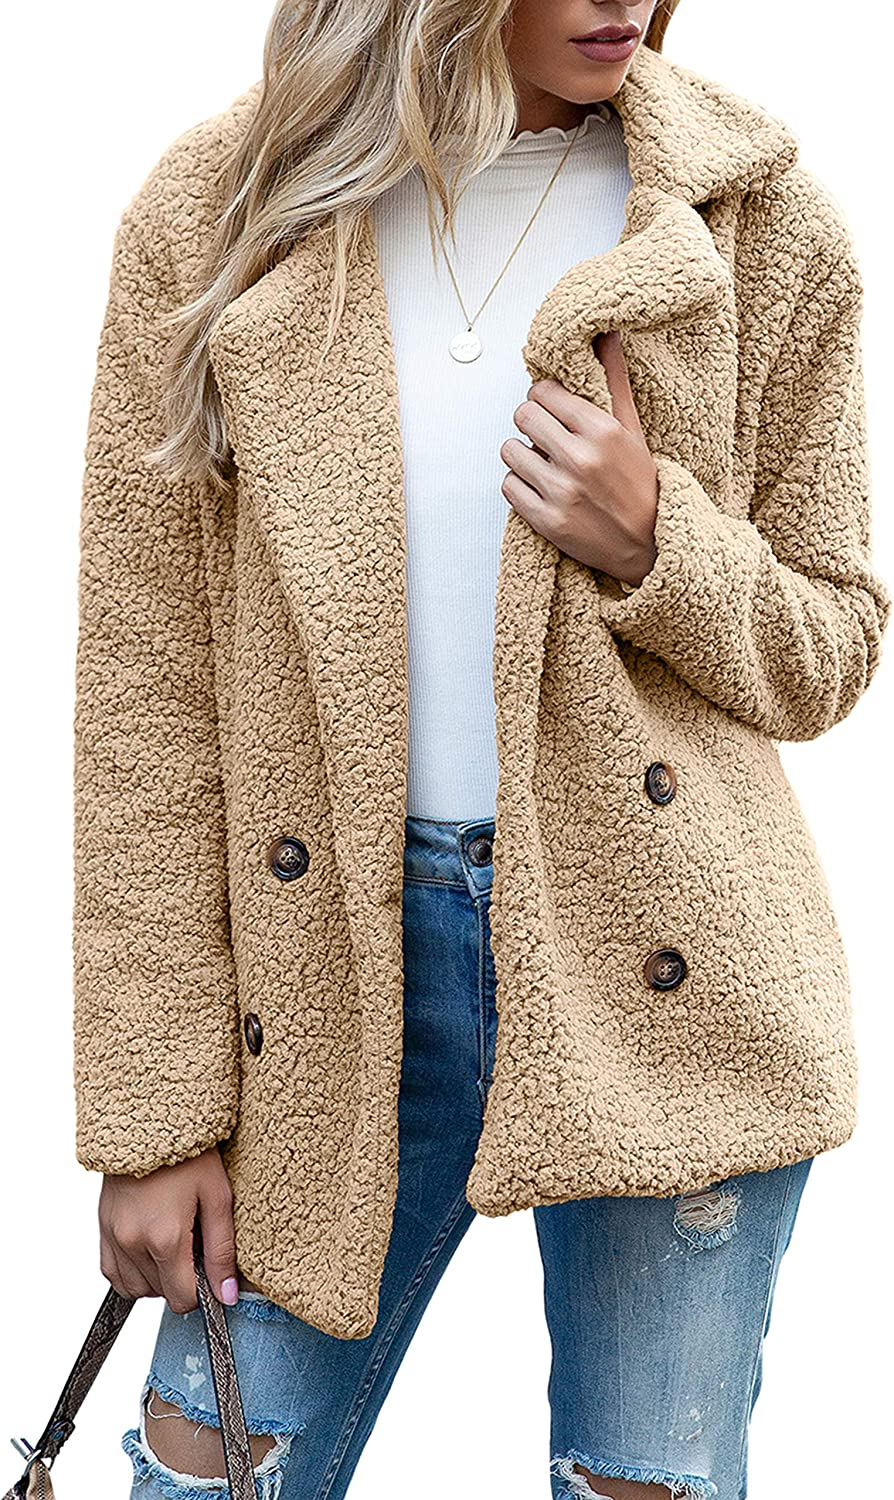 Uaneo Womens Casual Sherpa Double Breasted Notched Lapel Long Sleeve Pea Coats(Beige-XXL)